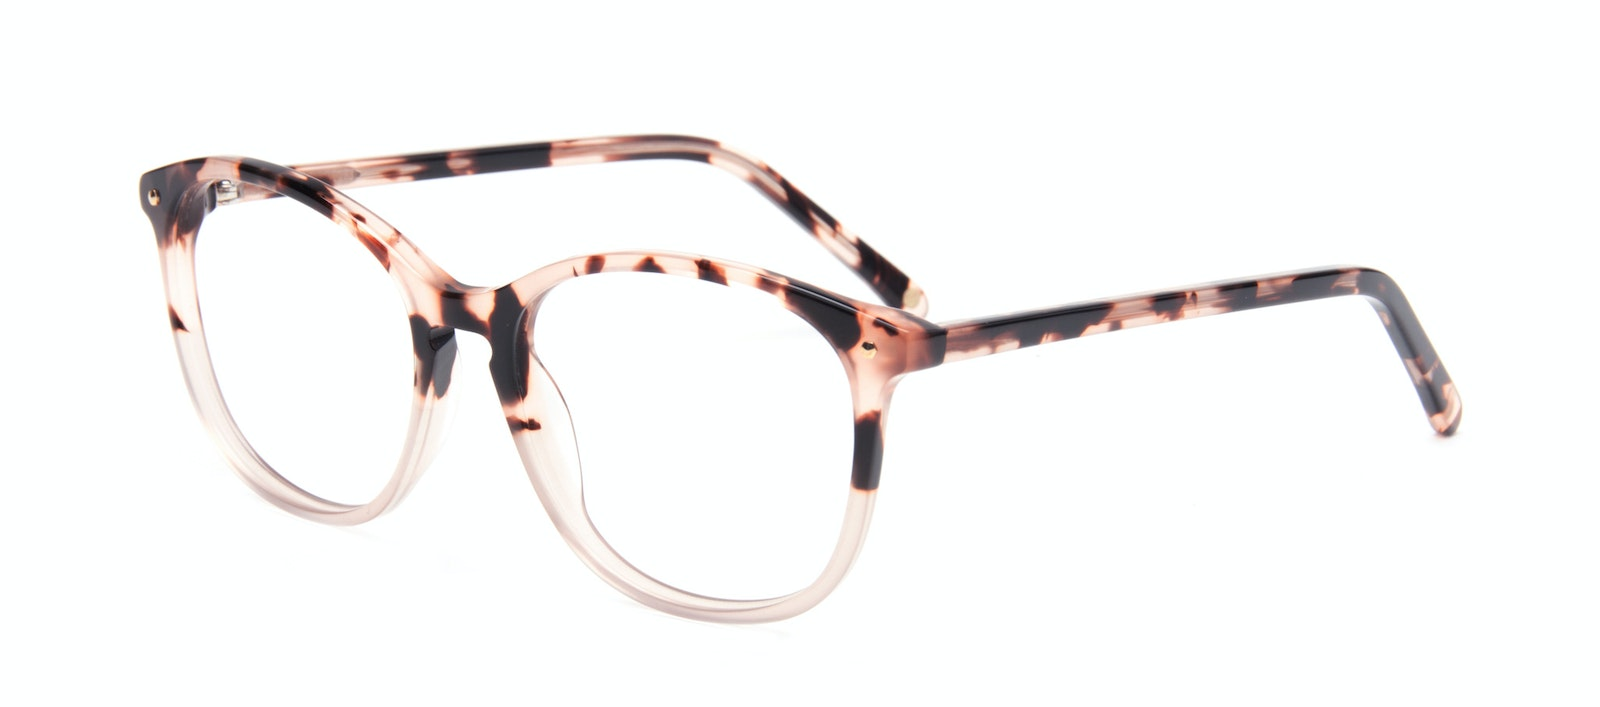 Affordable Fashion Glasses Round Eyeglasses Women Twist Two Tone Pink Tilt